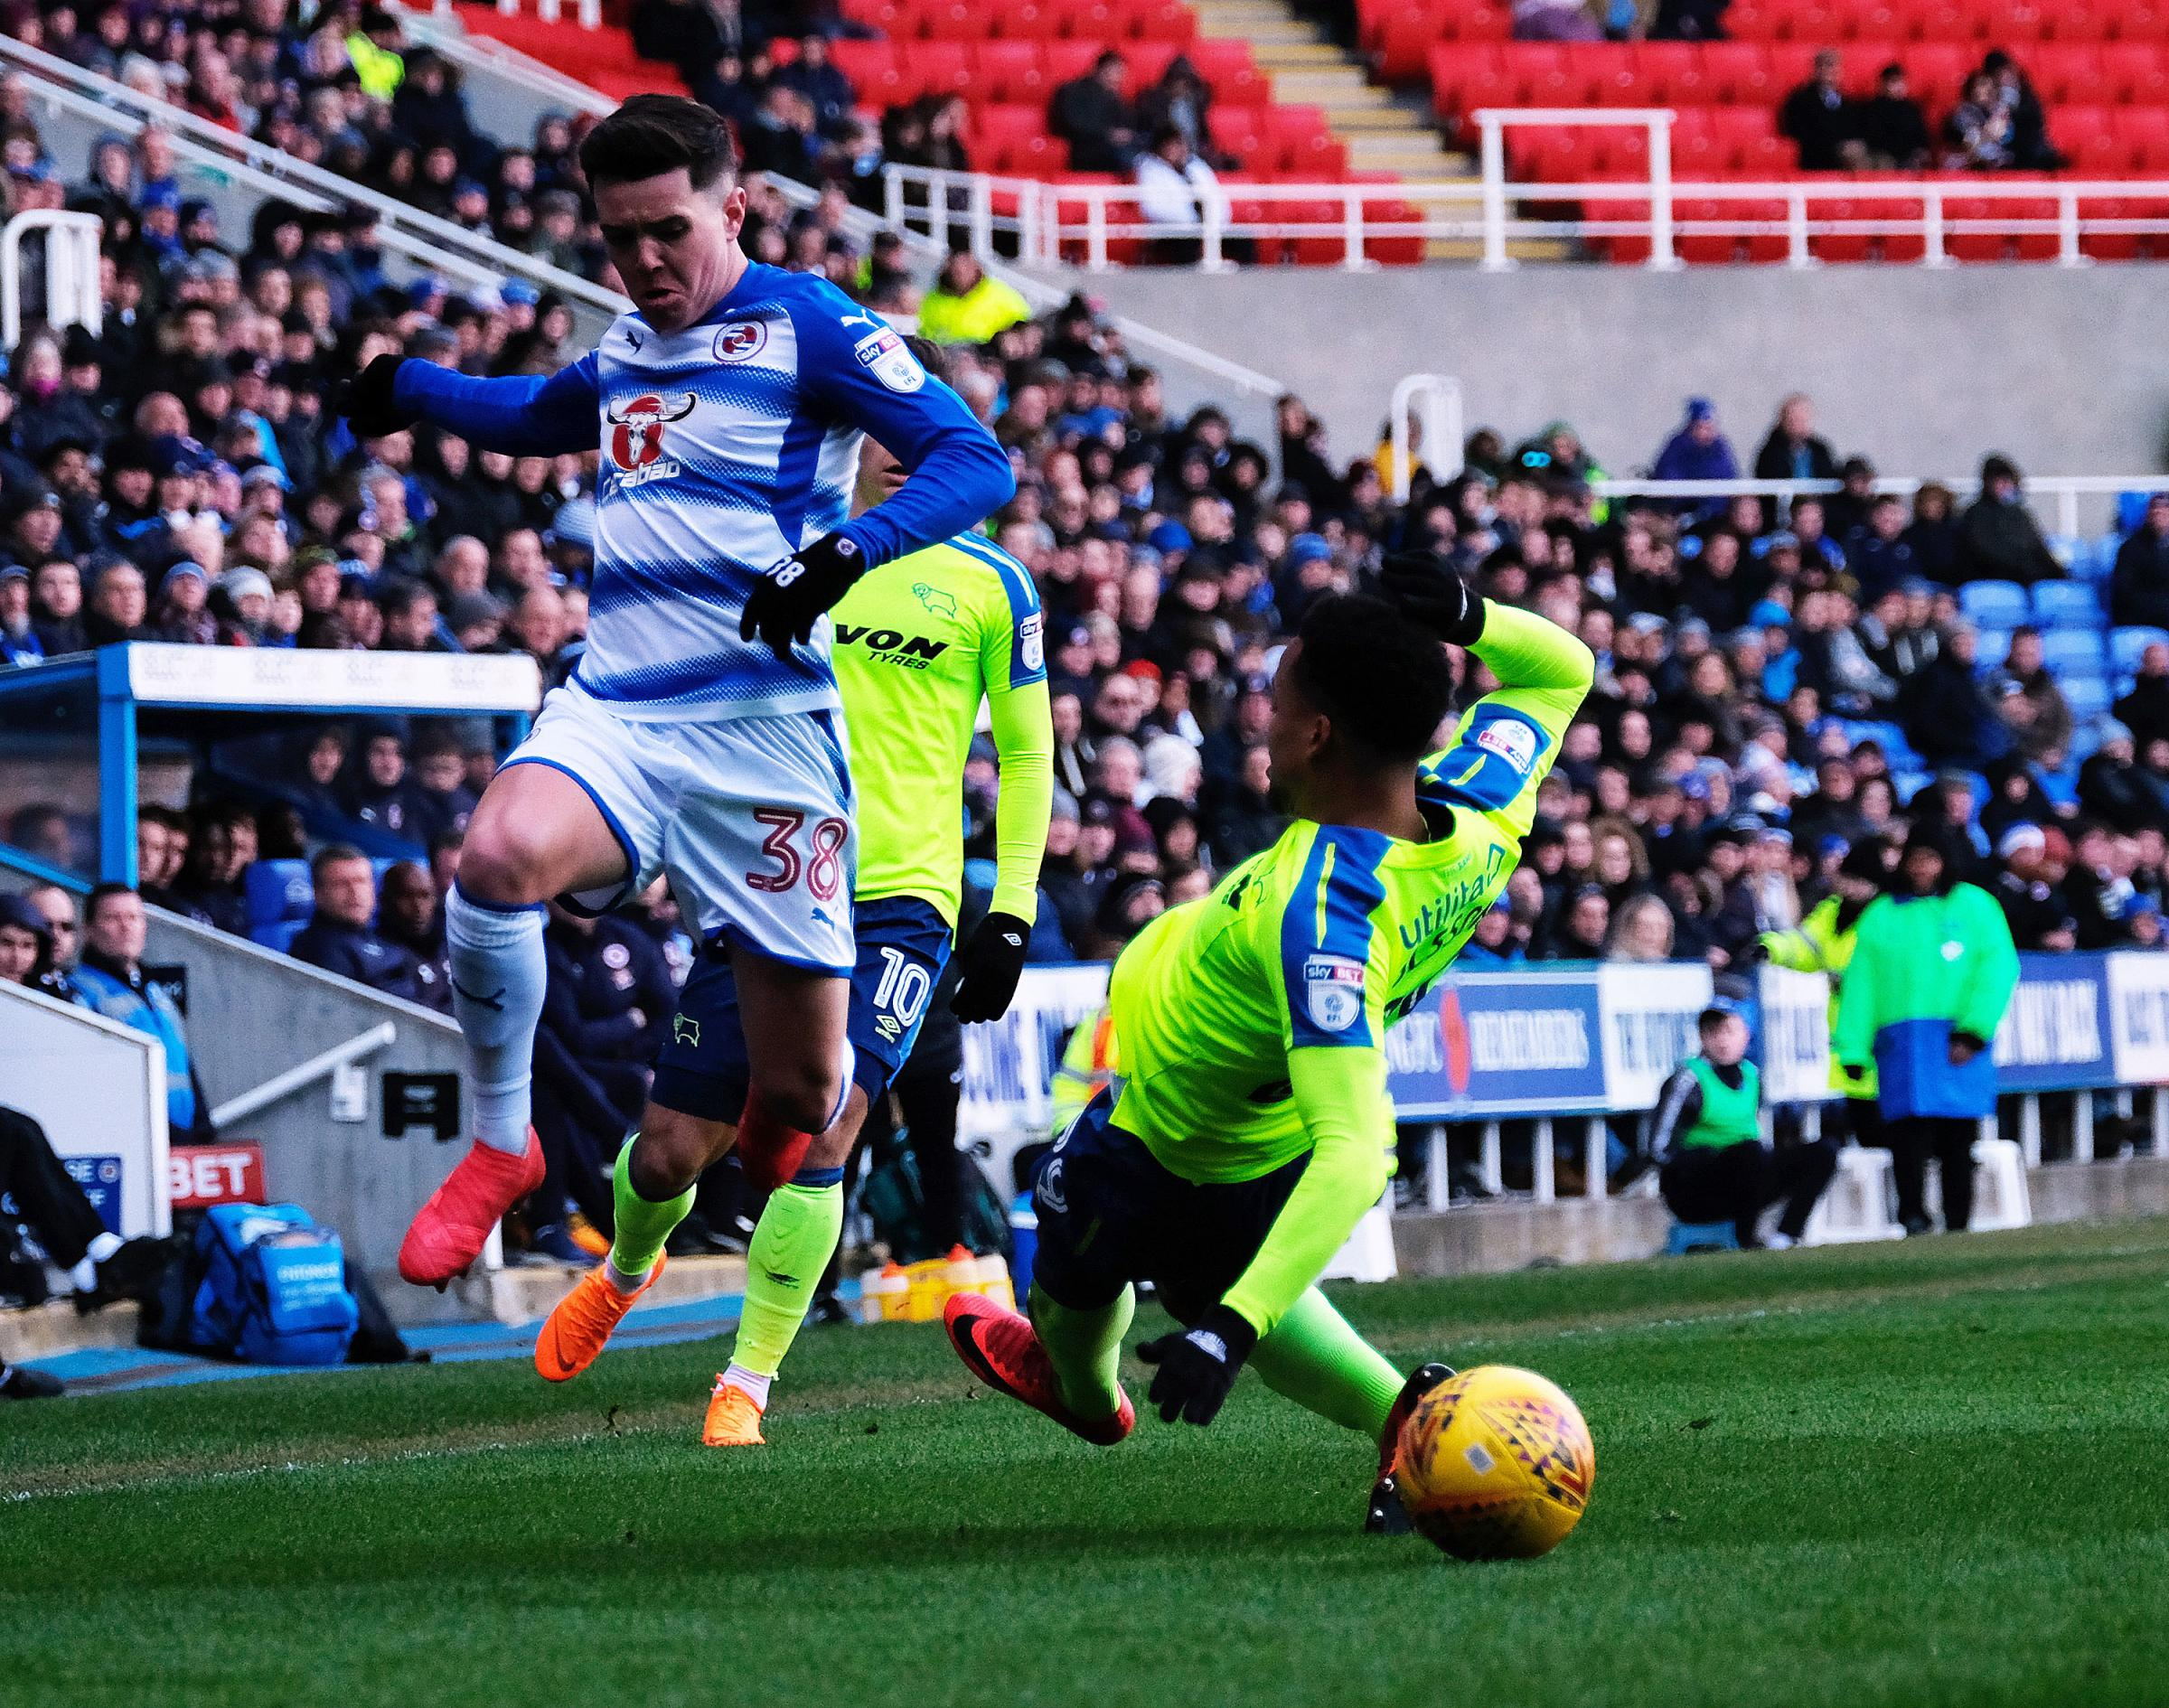 Liam Kelly skips past a Derby County opponent in the 3-3 draw.